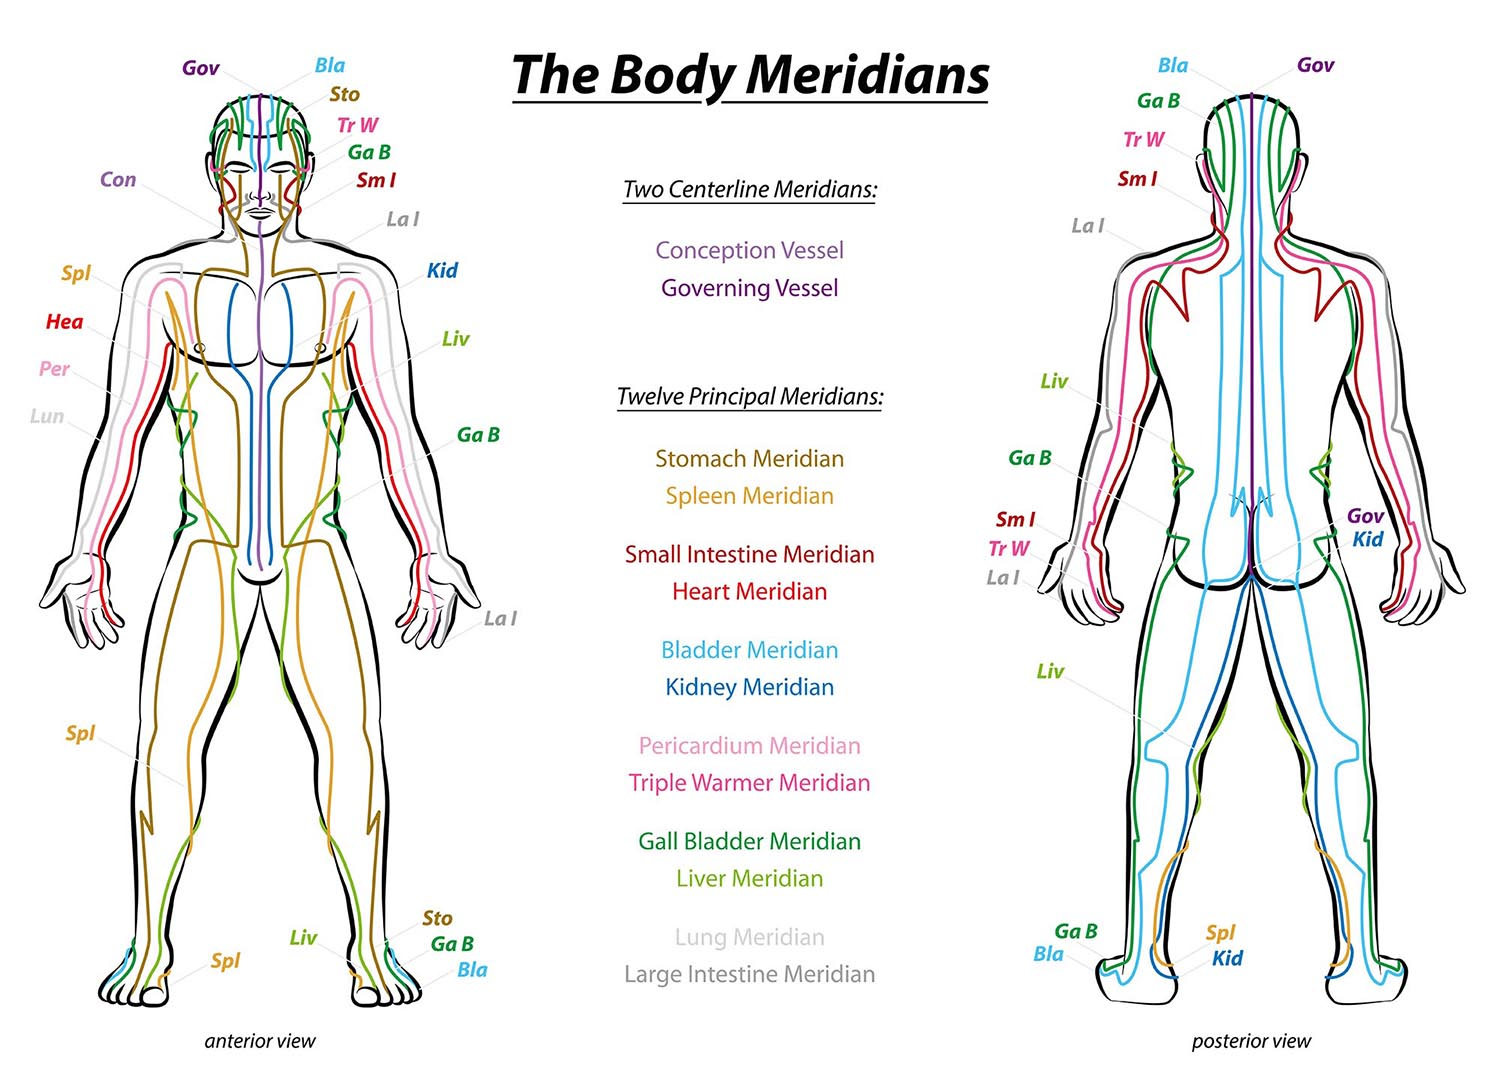 external qi healing treatment techniques address the organs and the body meridians